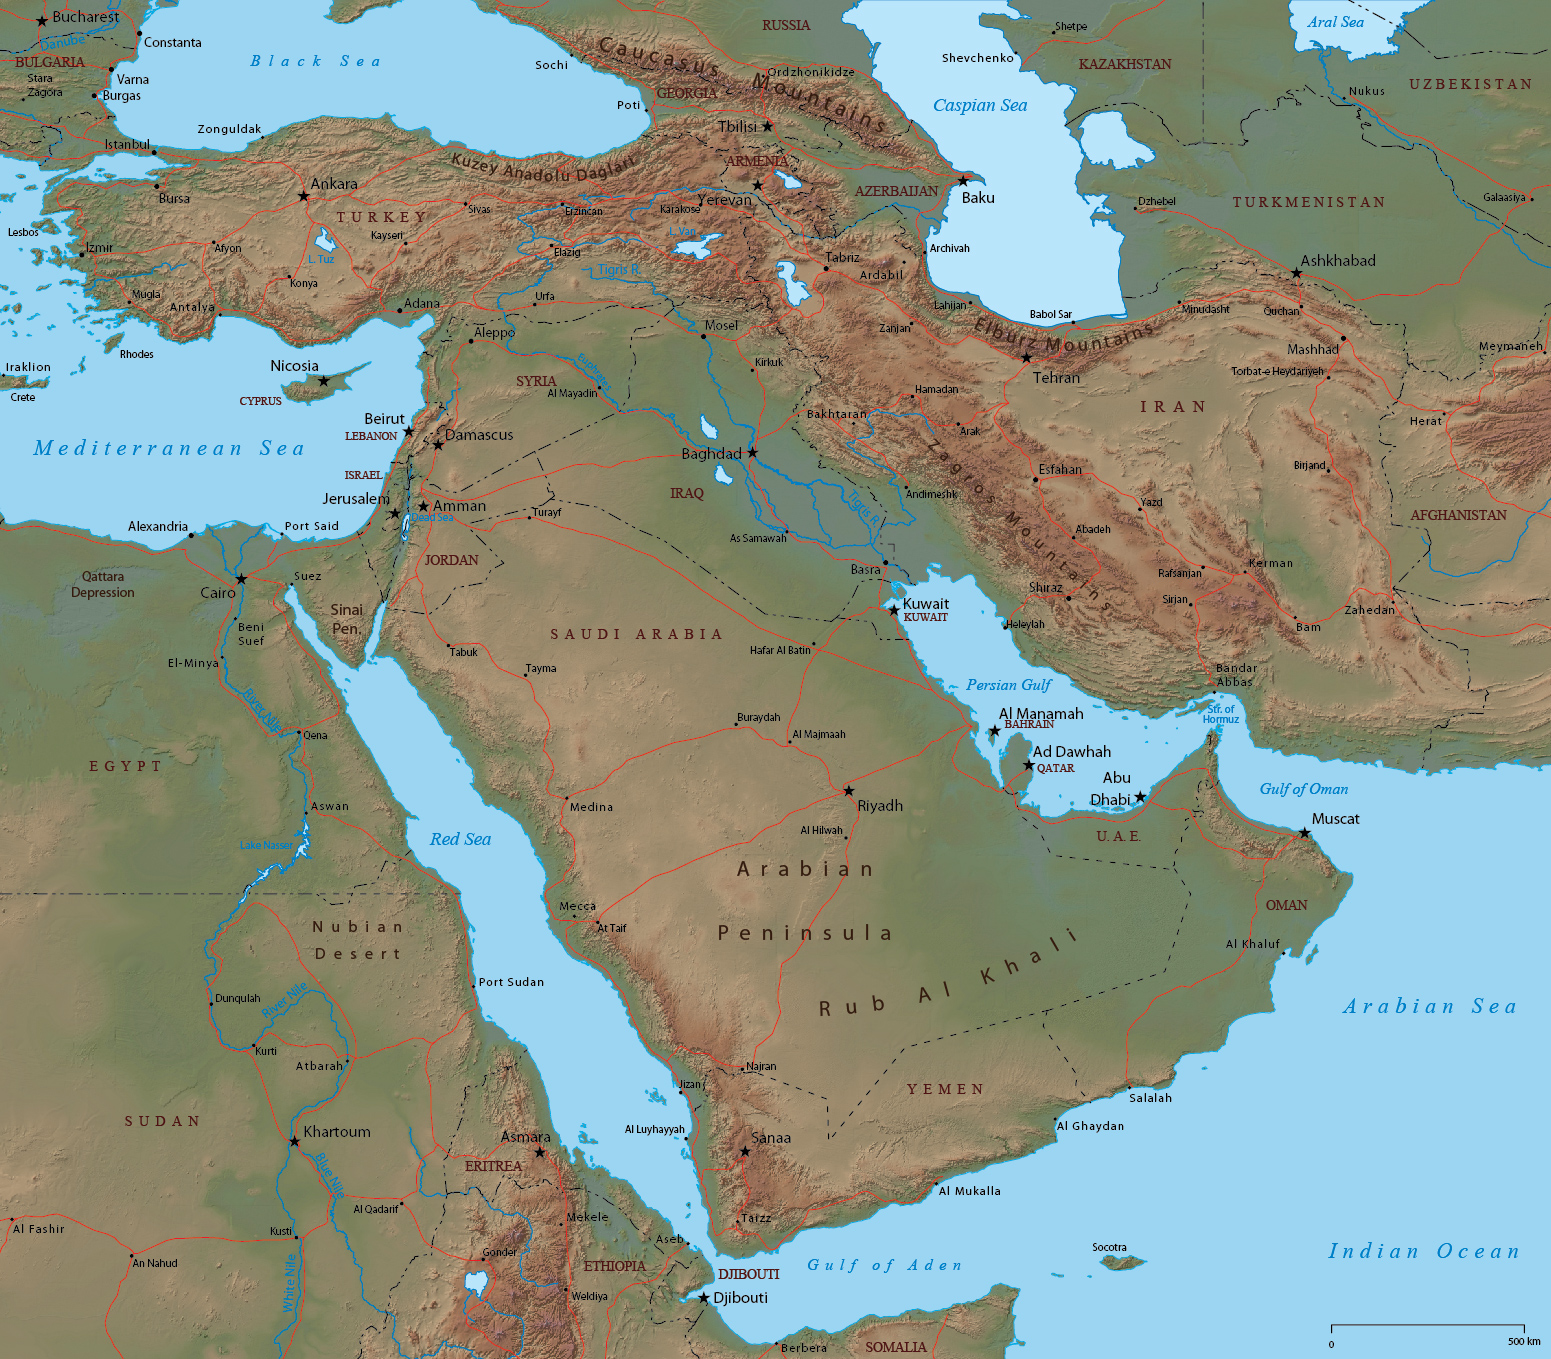 Persian Gulf   Map Middle East Countries in Asia  Jordan  United Arab Emirates  Kuwait  Yemen  Oman  Saudi  Arabia  Iran  Qatar and Iraq  Cities of Mecca  Abu Dhabi  Doha  Jerusalem  and